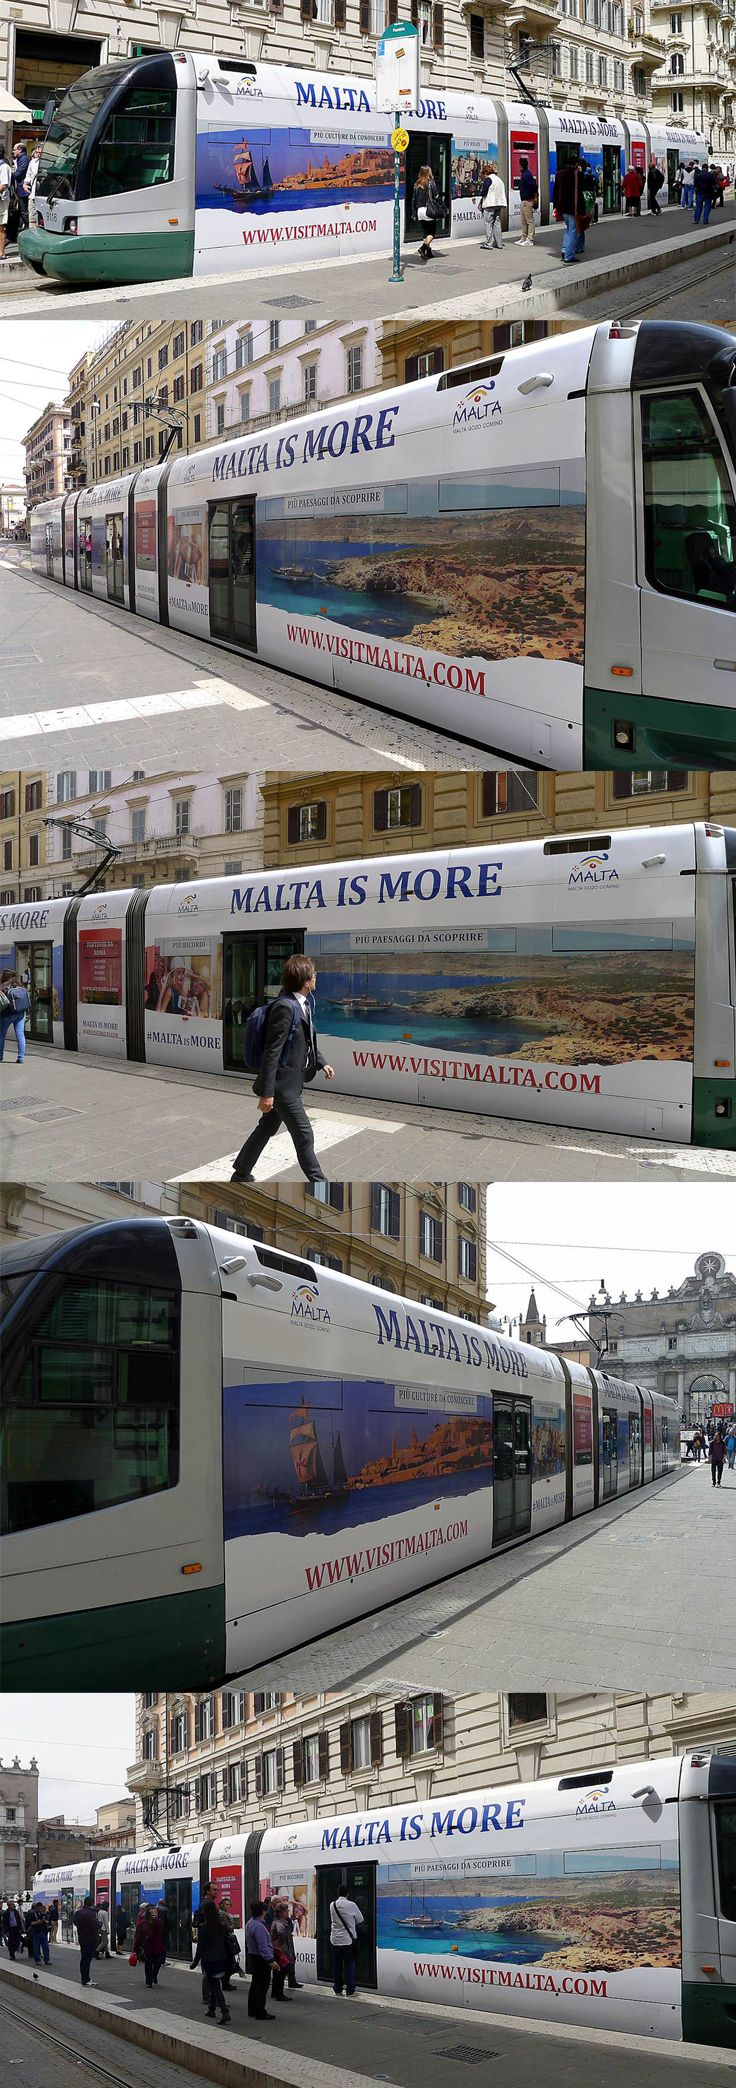 Malta outdoor advertising around Italy using the trams and buses of principal towns and cities - Roma, Bologne, Milano, Torino and Bari.